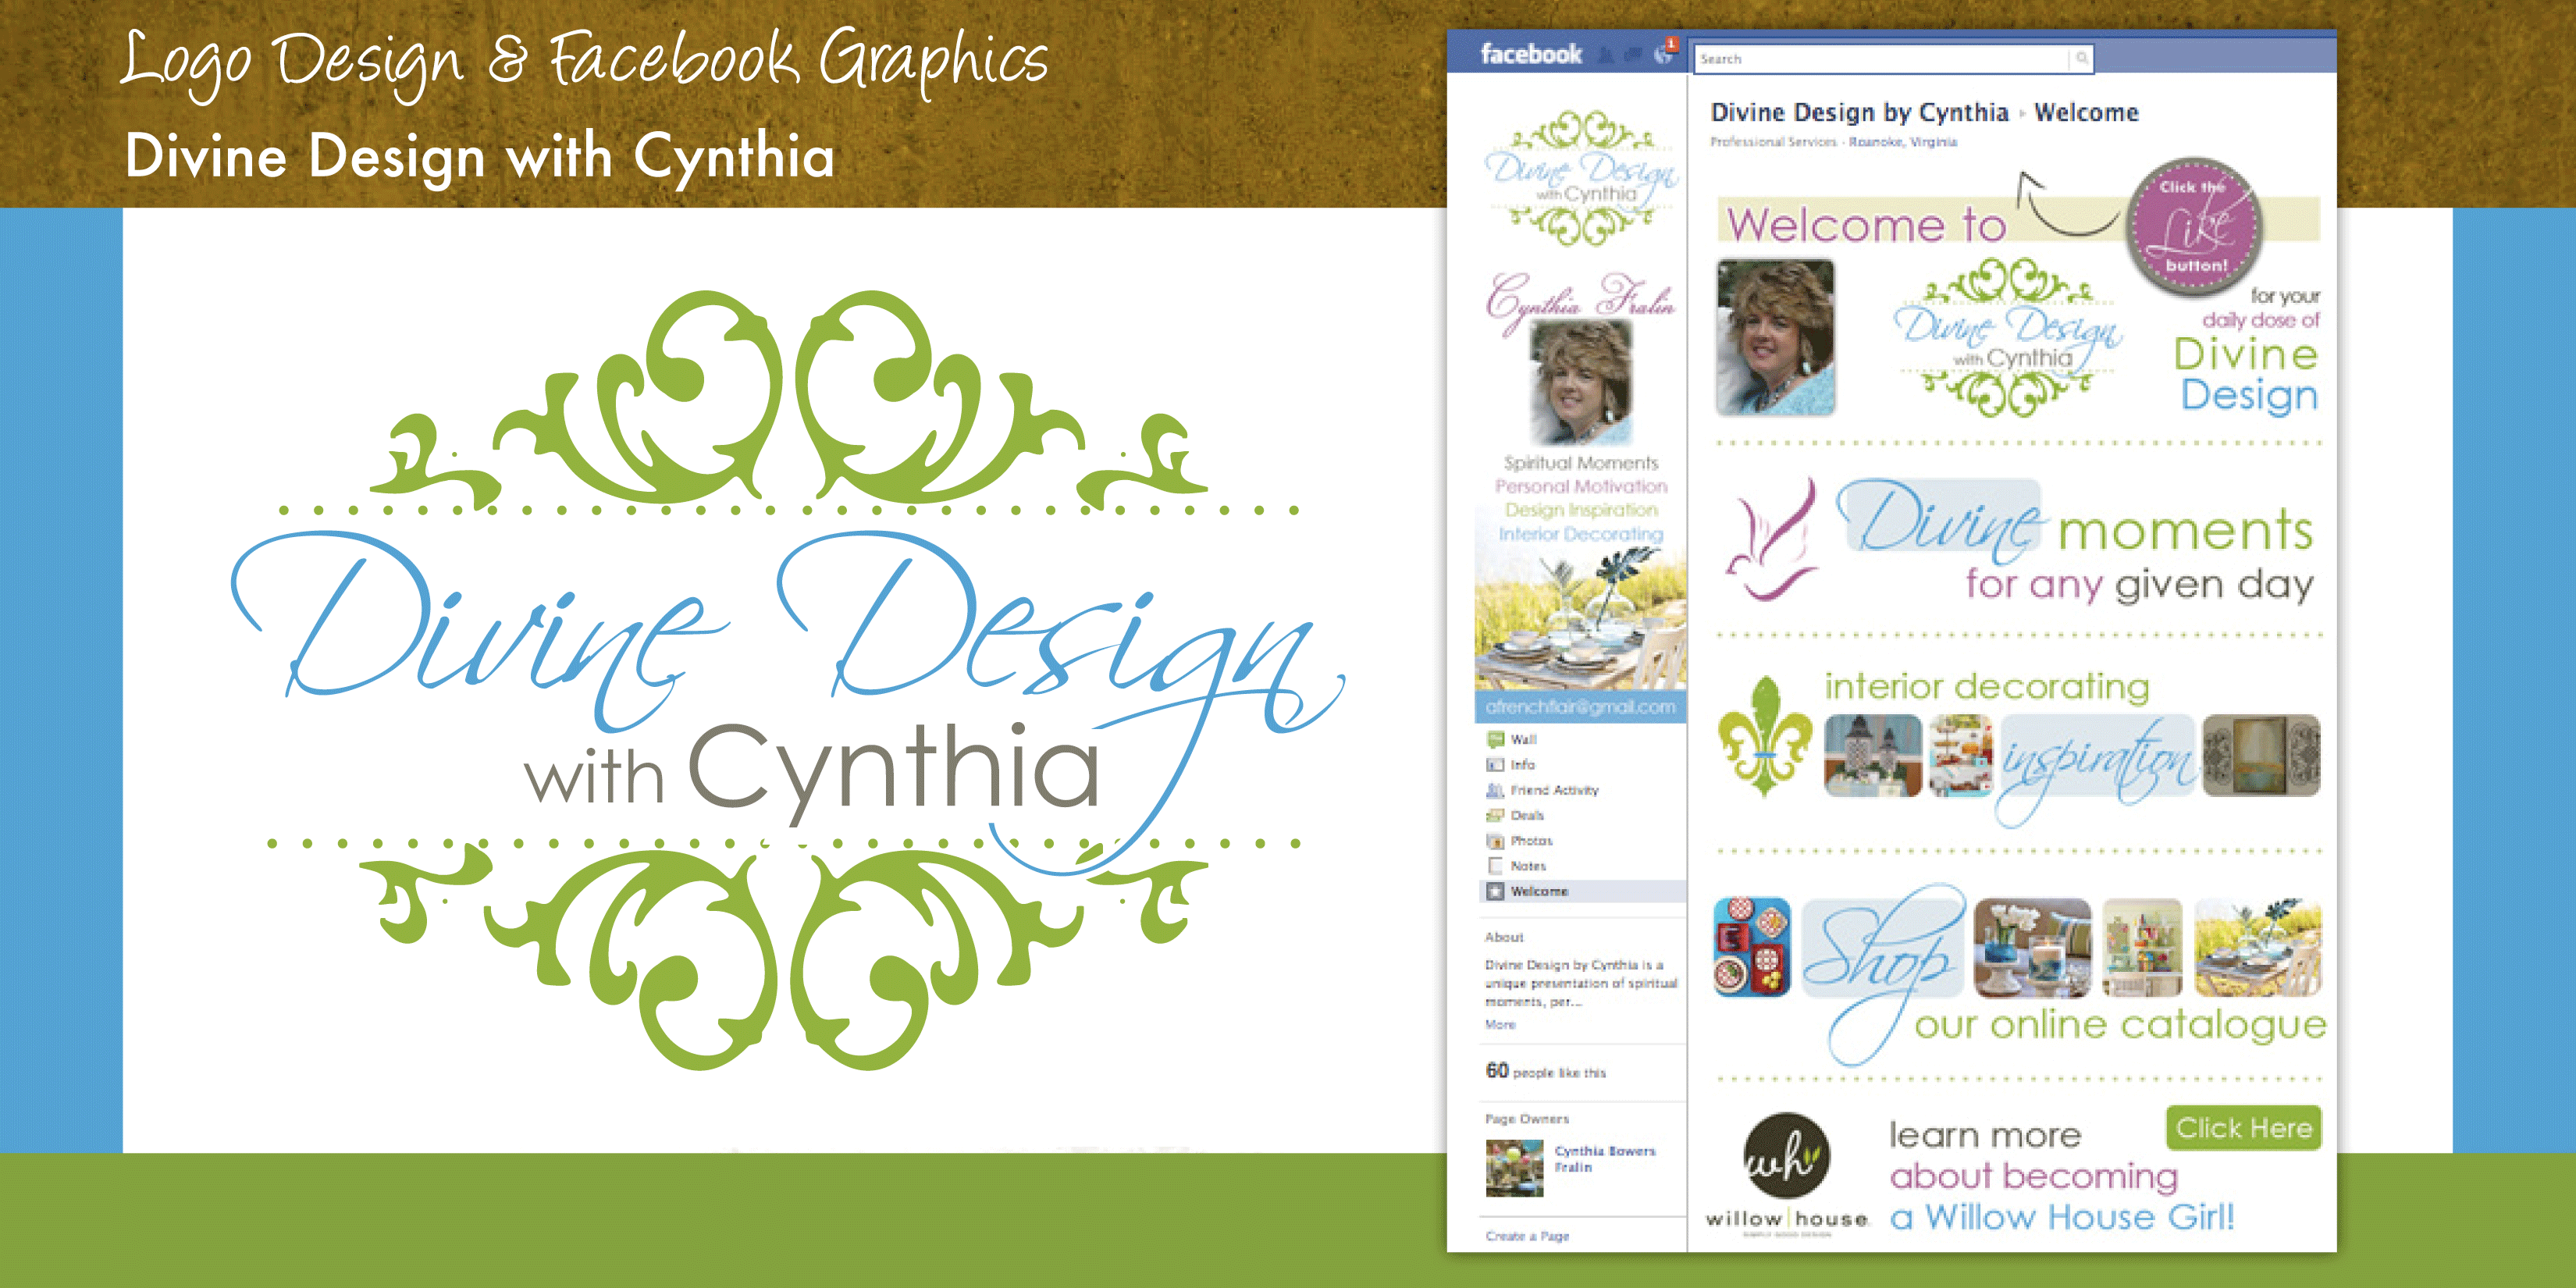 Divine Design with Cynthia - Facebook